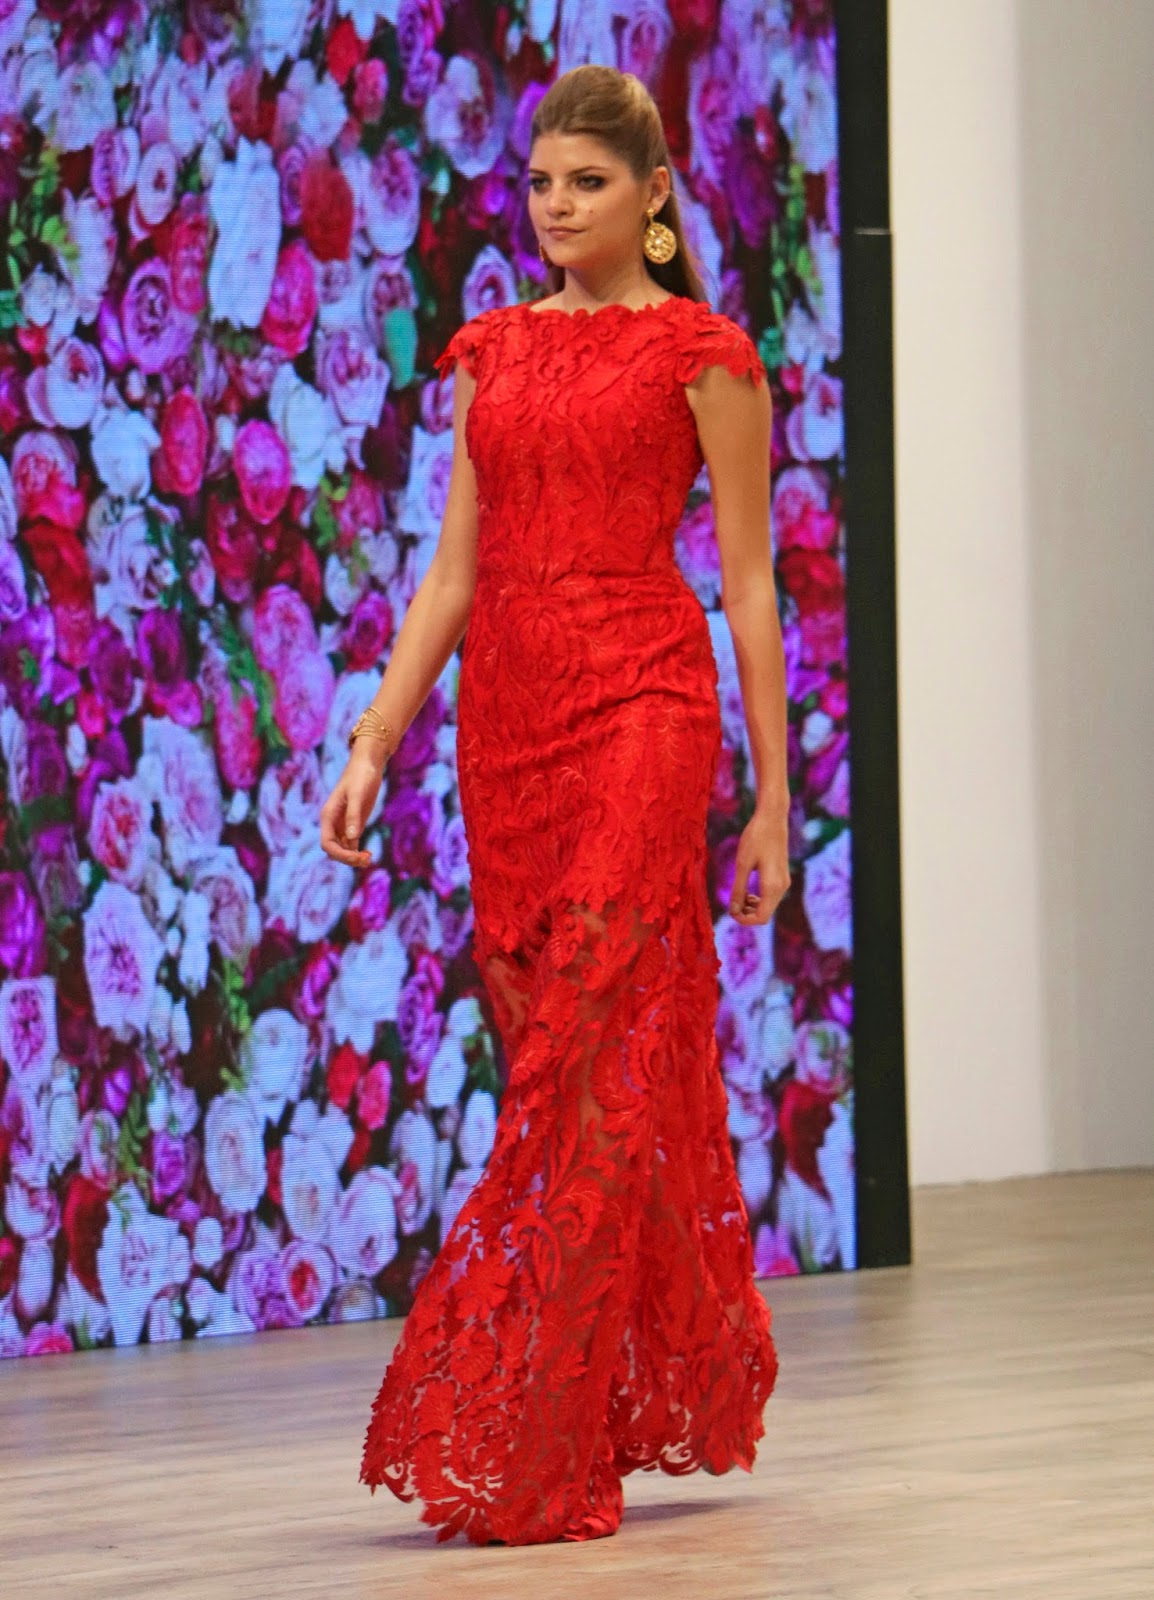 Gorgeous lace gown from the Panama Fashion Week Runway